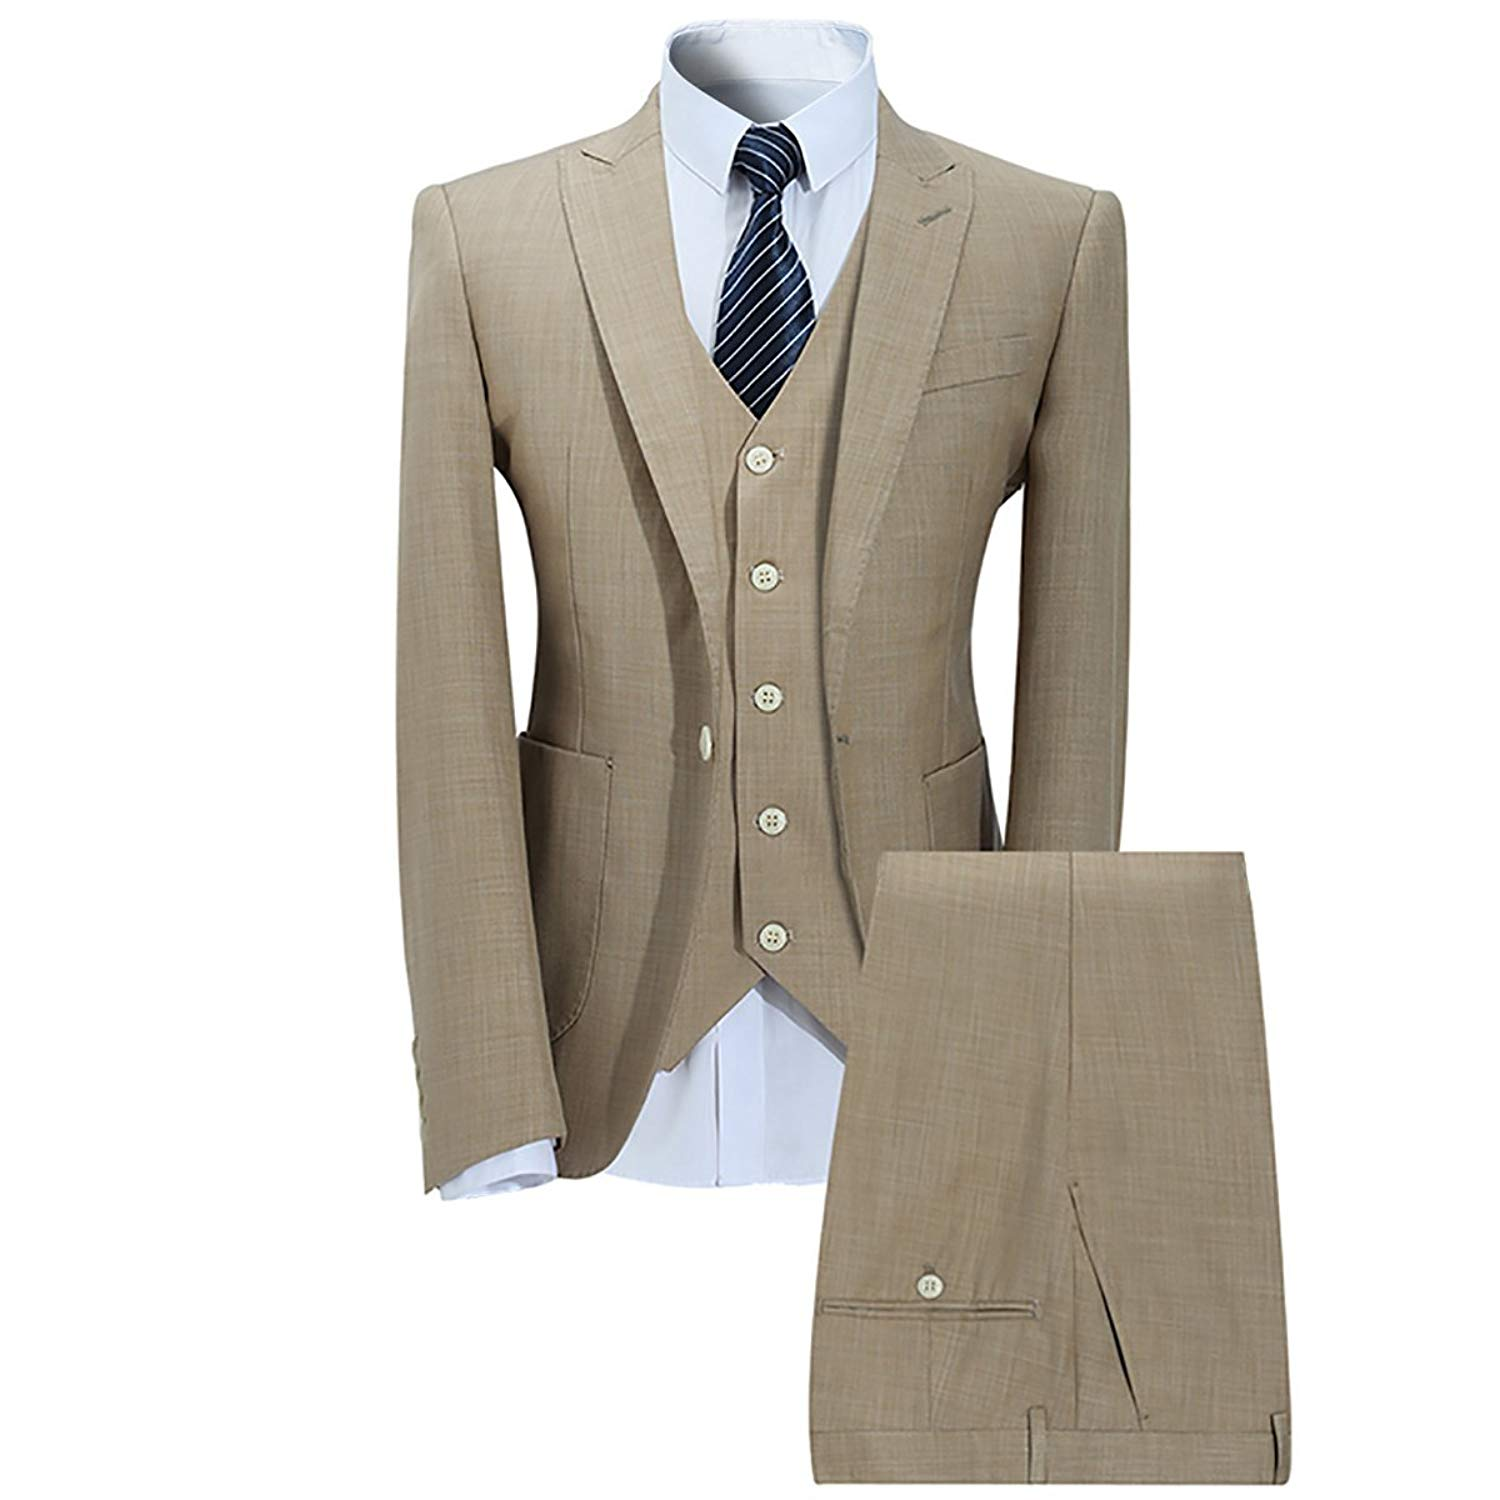 Mens 3 Piece One Button Weeding Casual Slim Fit Dress